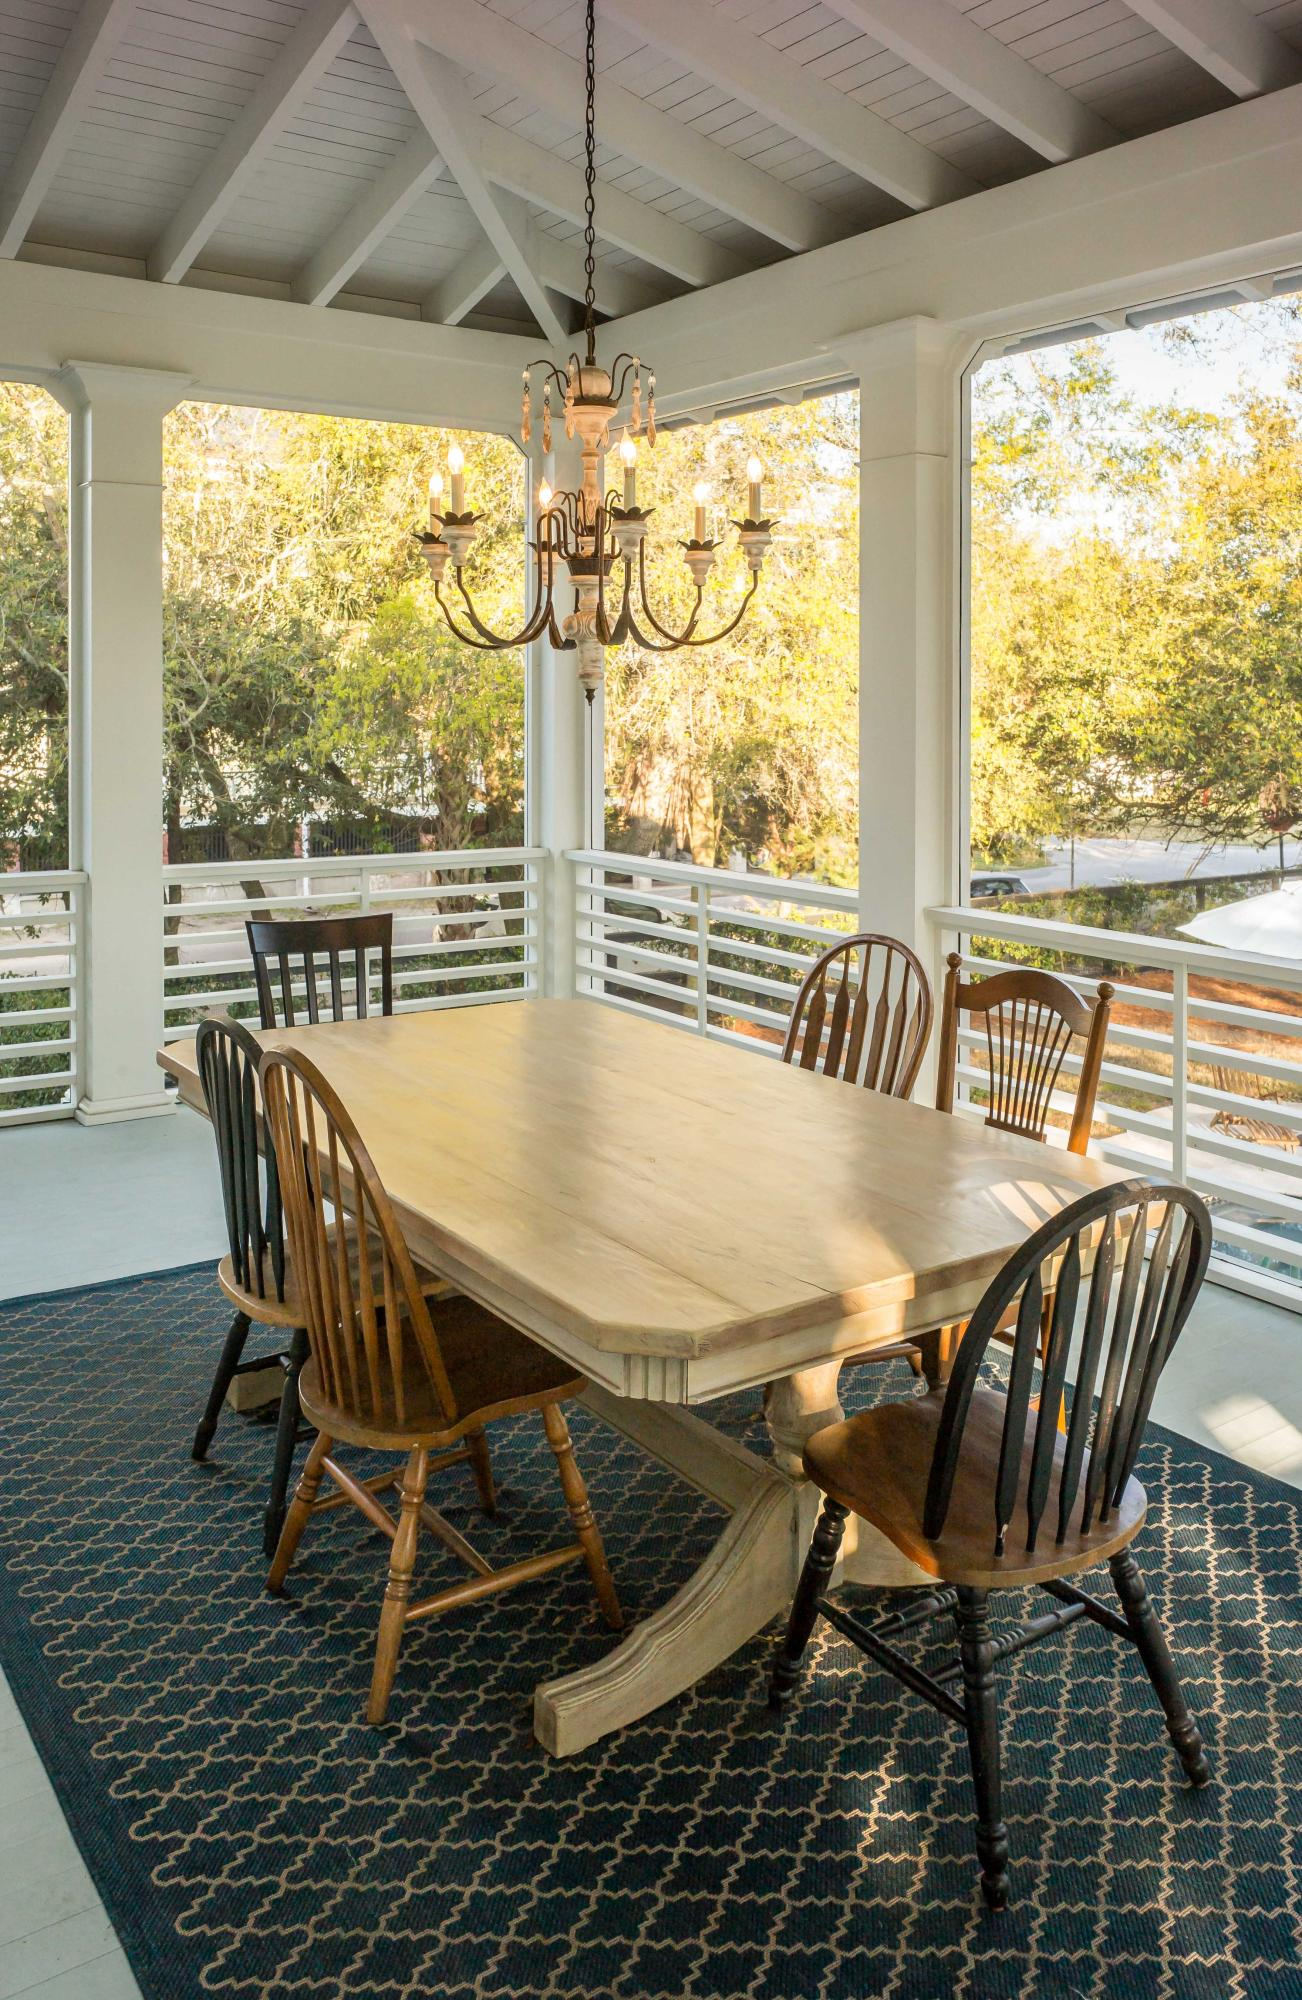 Sullivans Island Homes For Sale - 1802 Ion, Sullivans Island, SC - 38